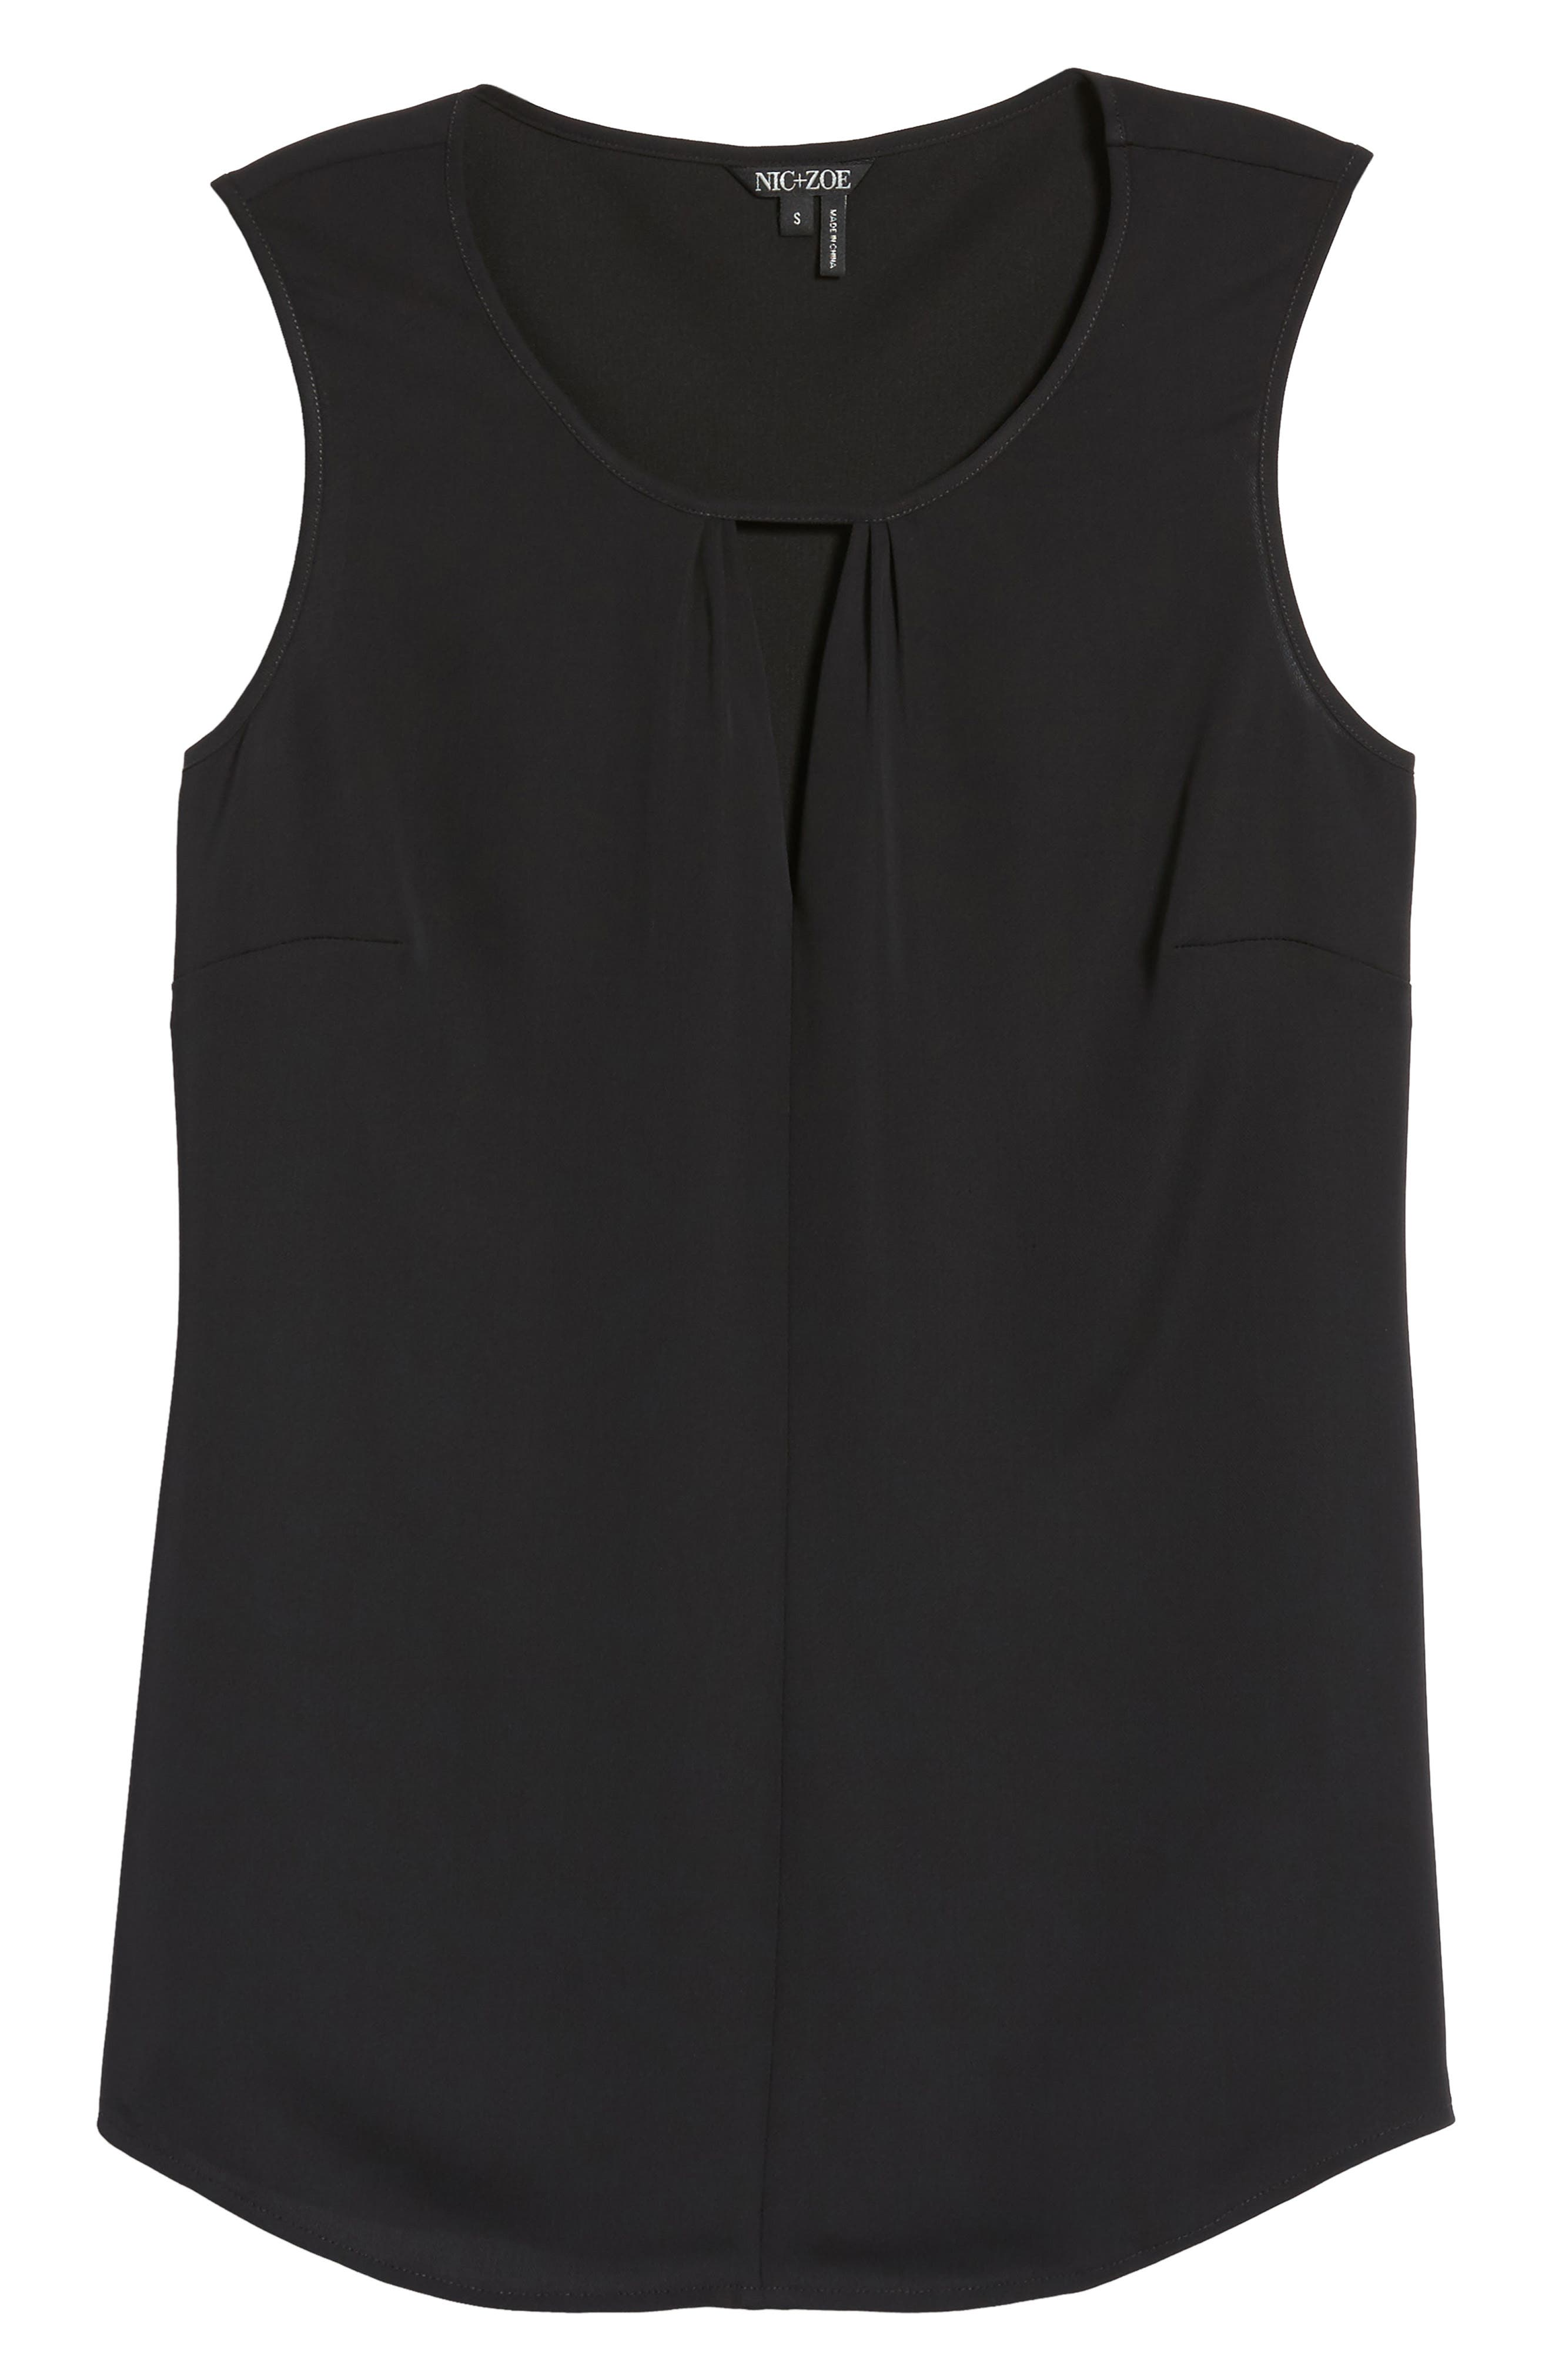 Easy Keyhole Tank Top,                             Alternate thumbnail 6, color,                             Black Onyx